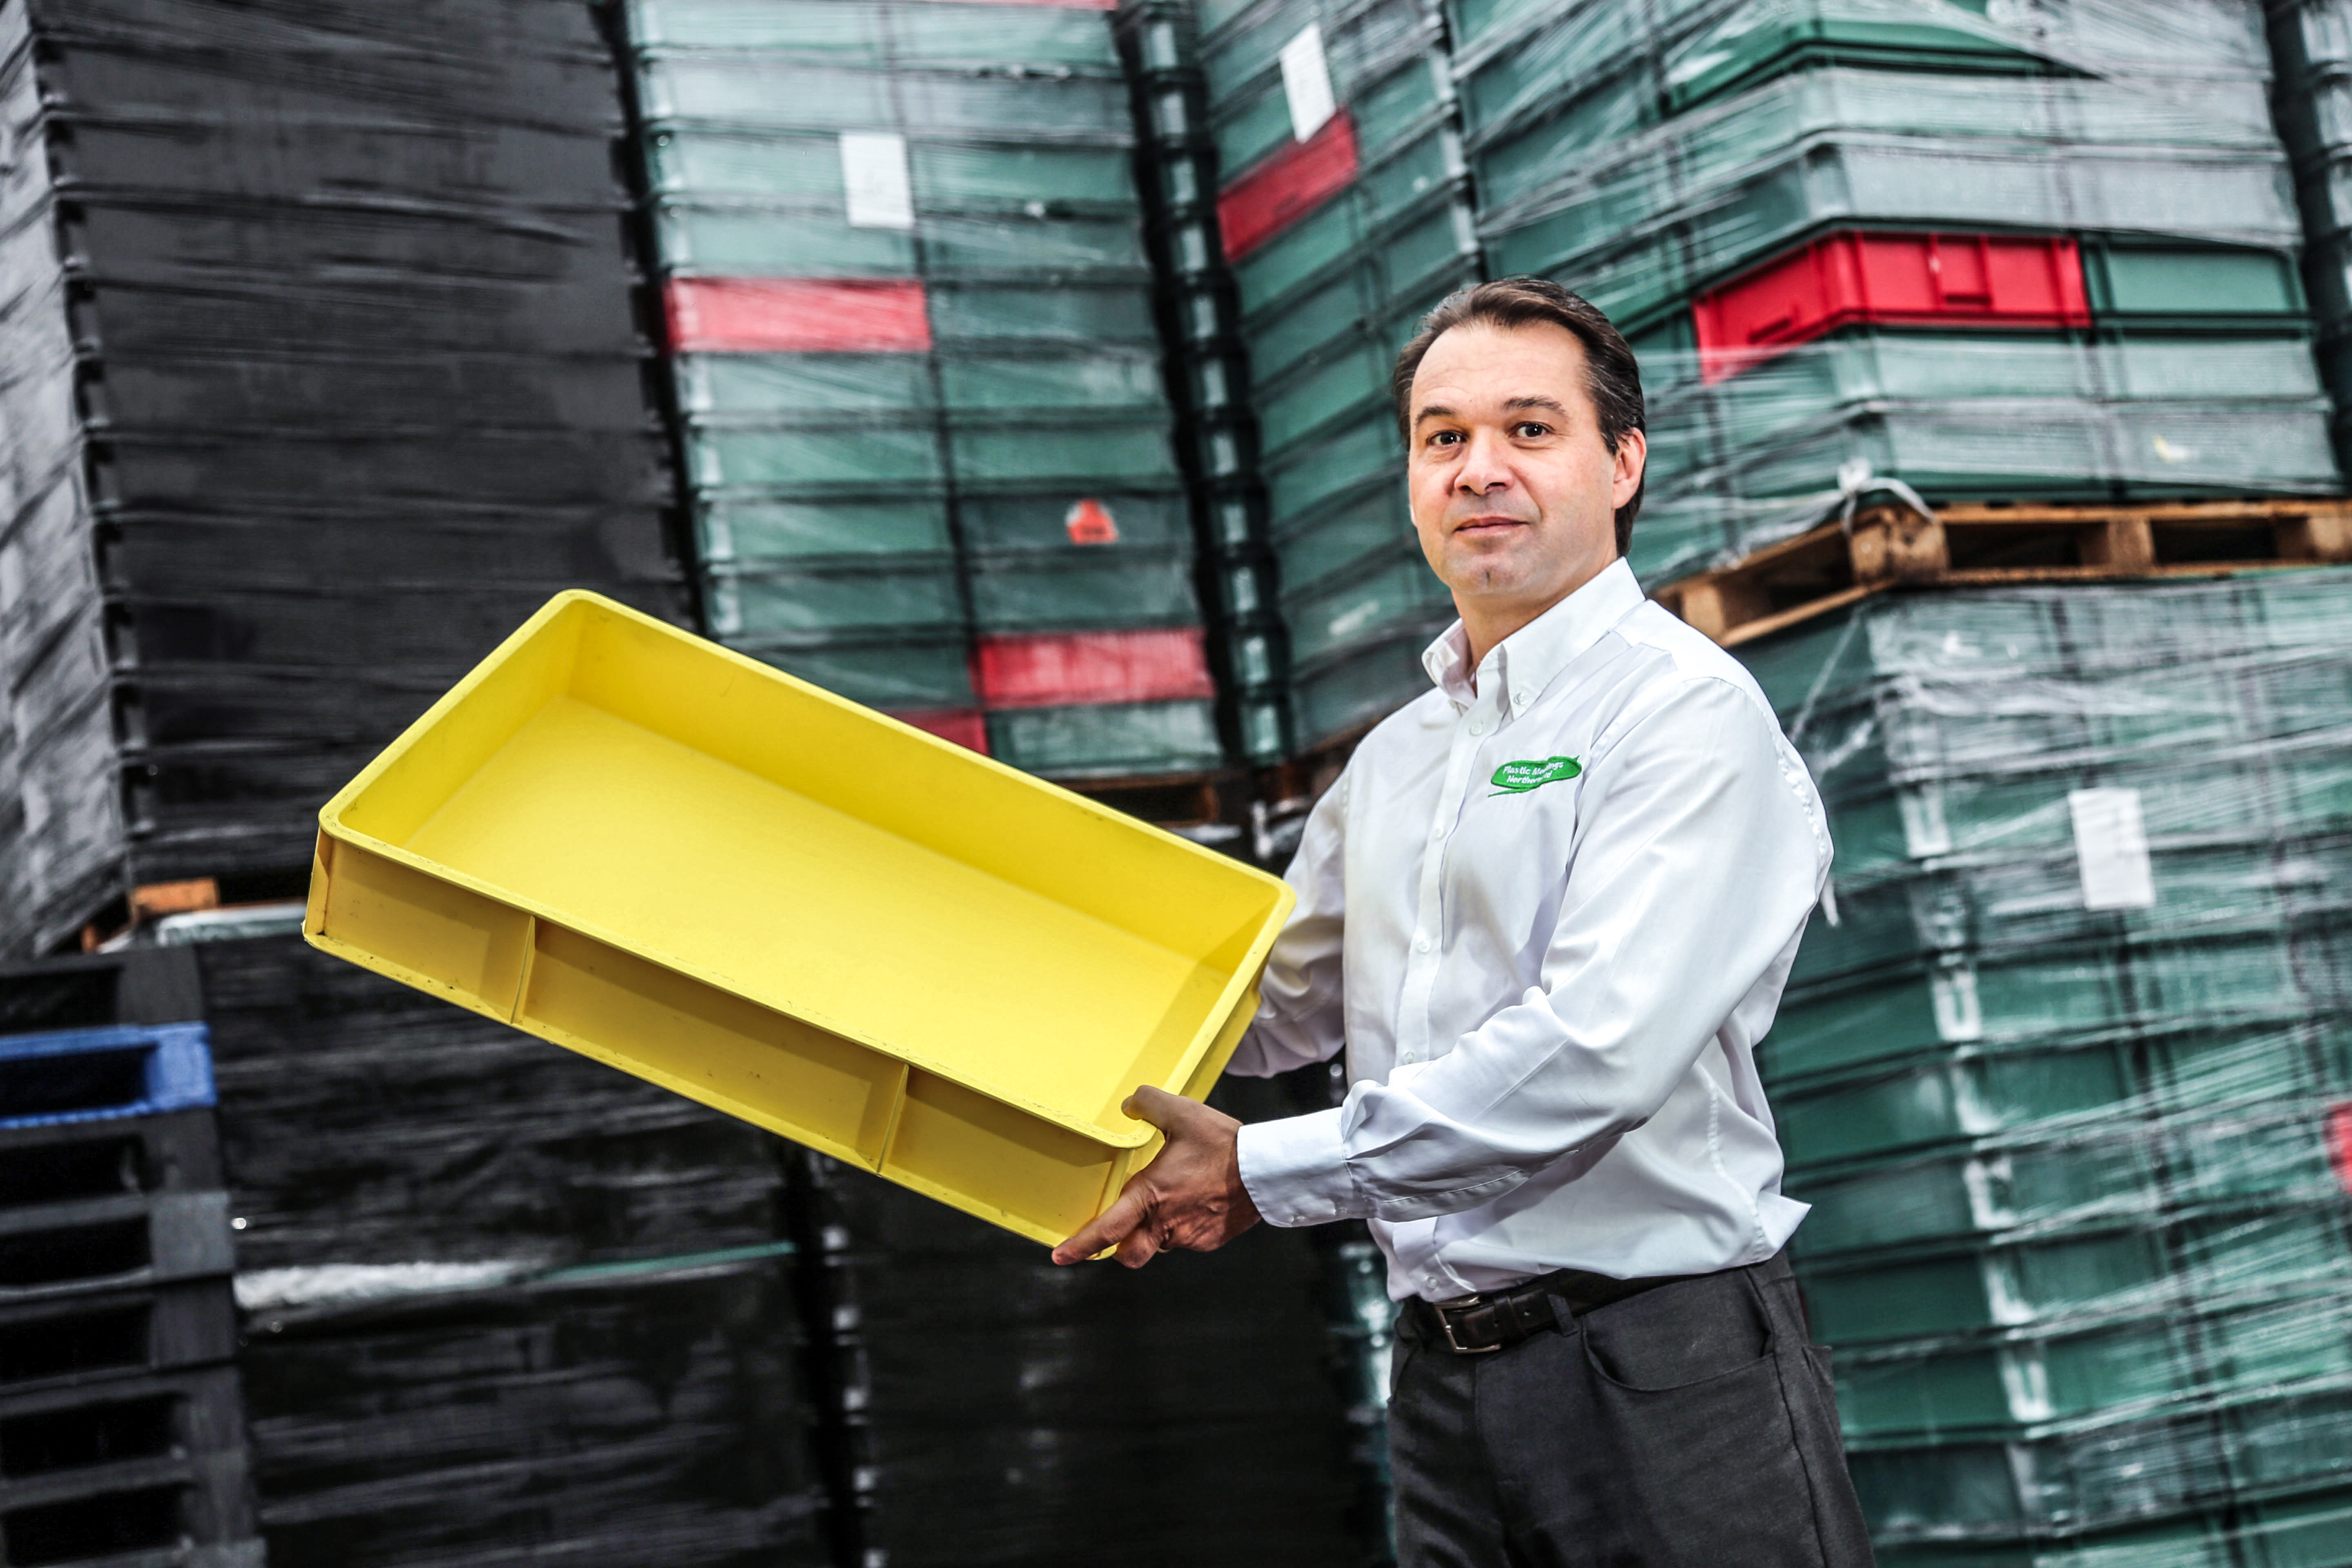 Plastic-Mouldings-Northern-director-Freddy-Bourdais Plastics firm is boxing clever as pallets business picks up - Plastic Mouldings Northern